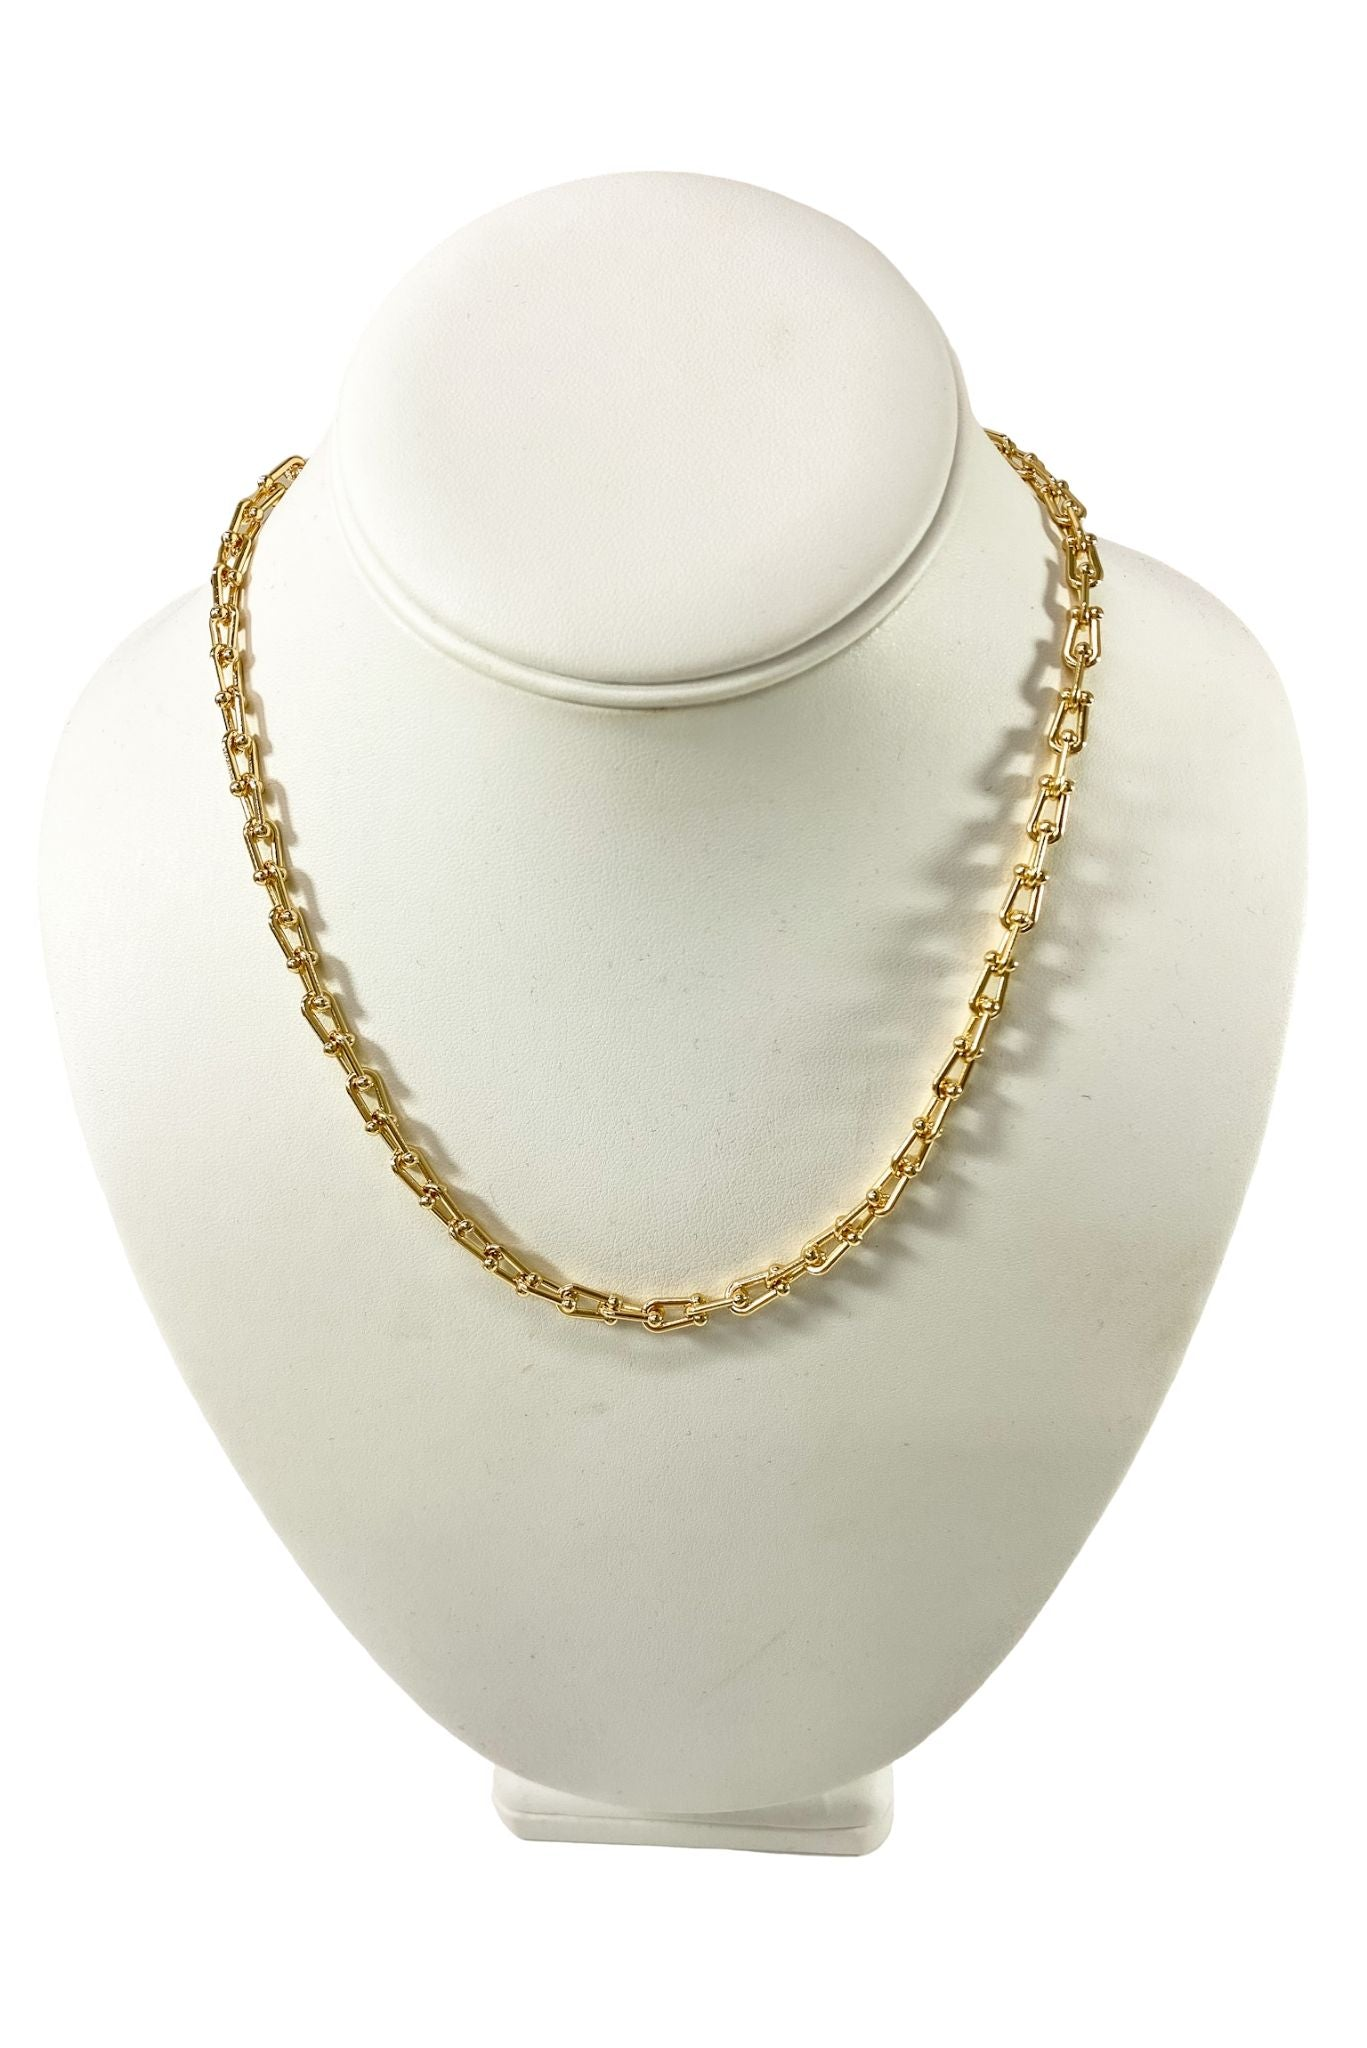 Gold U Chain Link Necklace